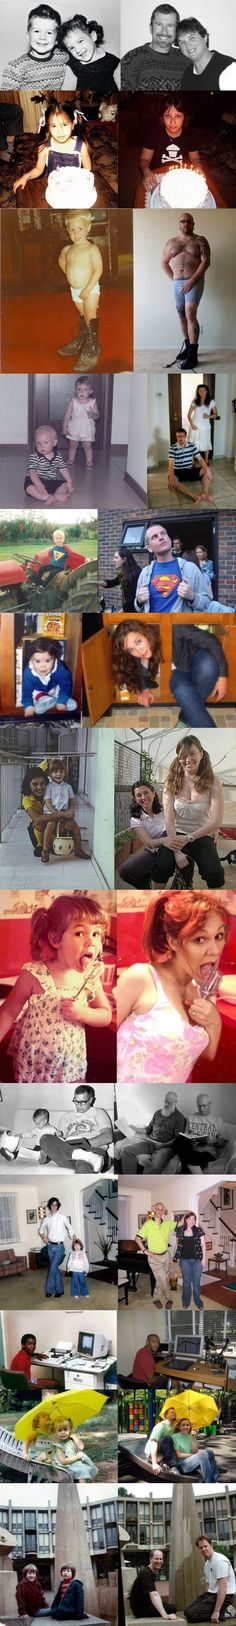 Recreating childhood photos - hilarious gift for parents. This could be so much fun!